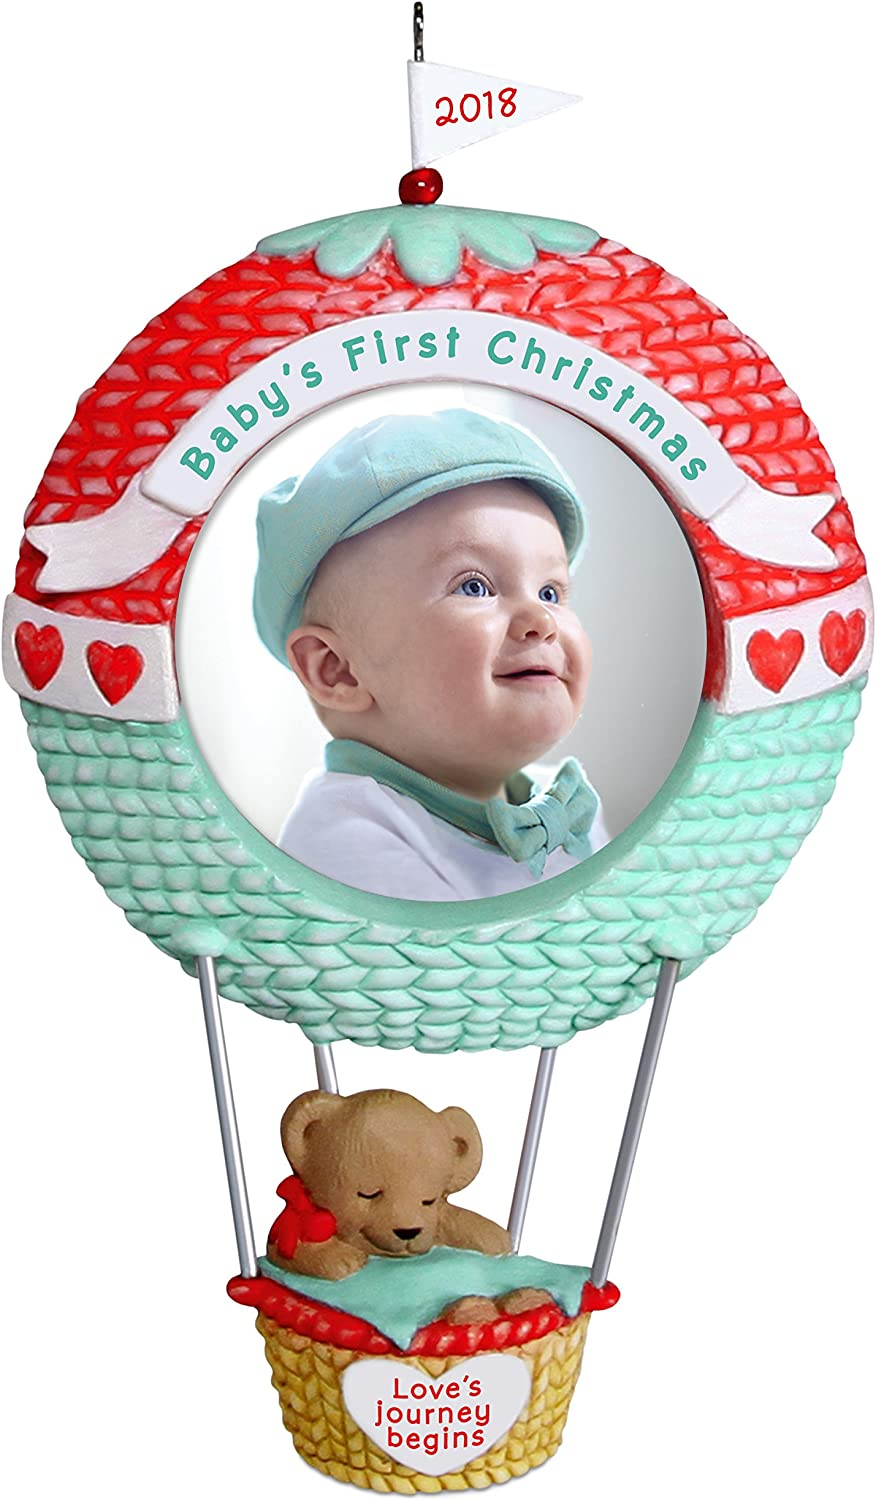 Hallmark Keepsake Ornament 2018 Personalized Year Dated, Baby's First Christmas Love's Journey Begins Picture Frame, Photo, Hot Air Balloon